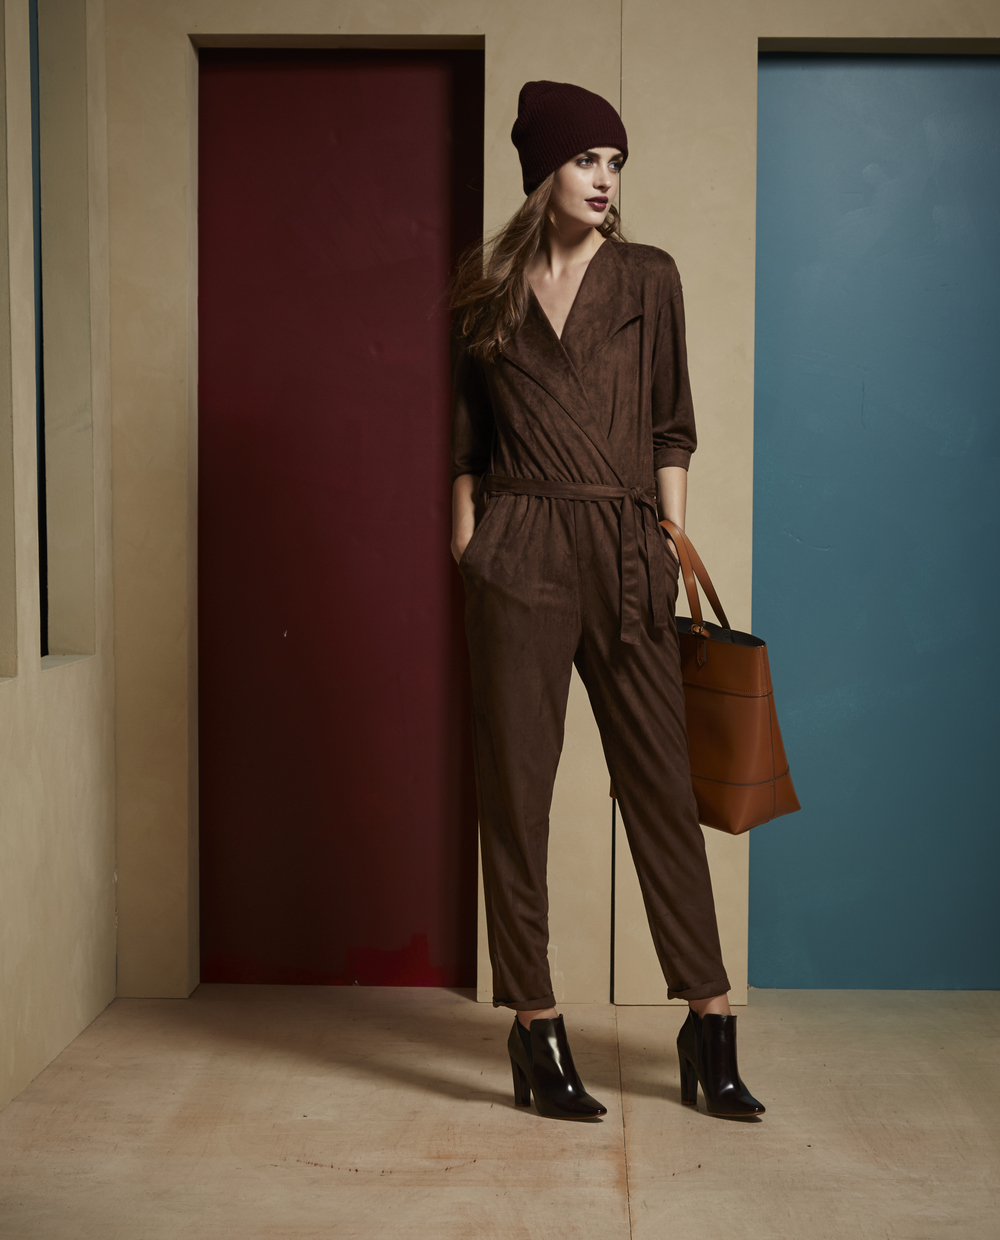 238282-POS1-09-06-15-THE+FALL+STYLE+REPORT-CF-411.jpg